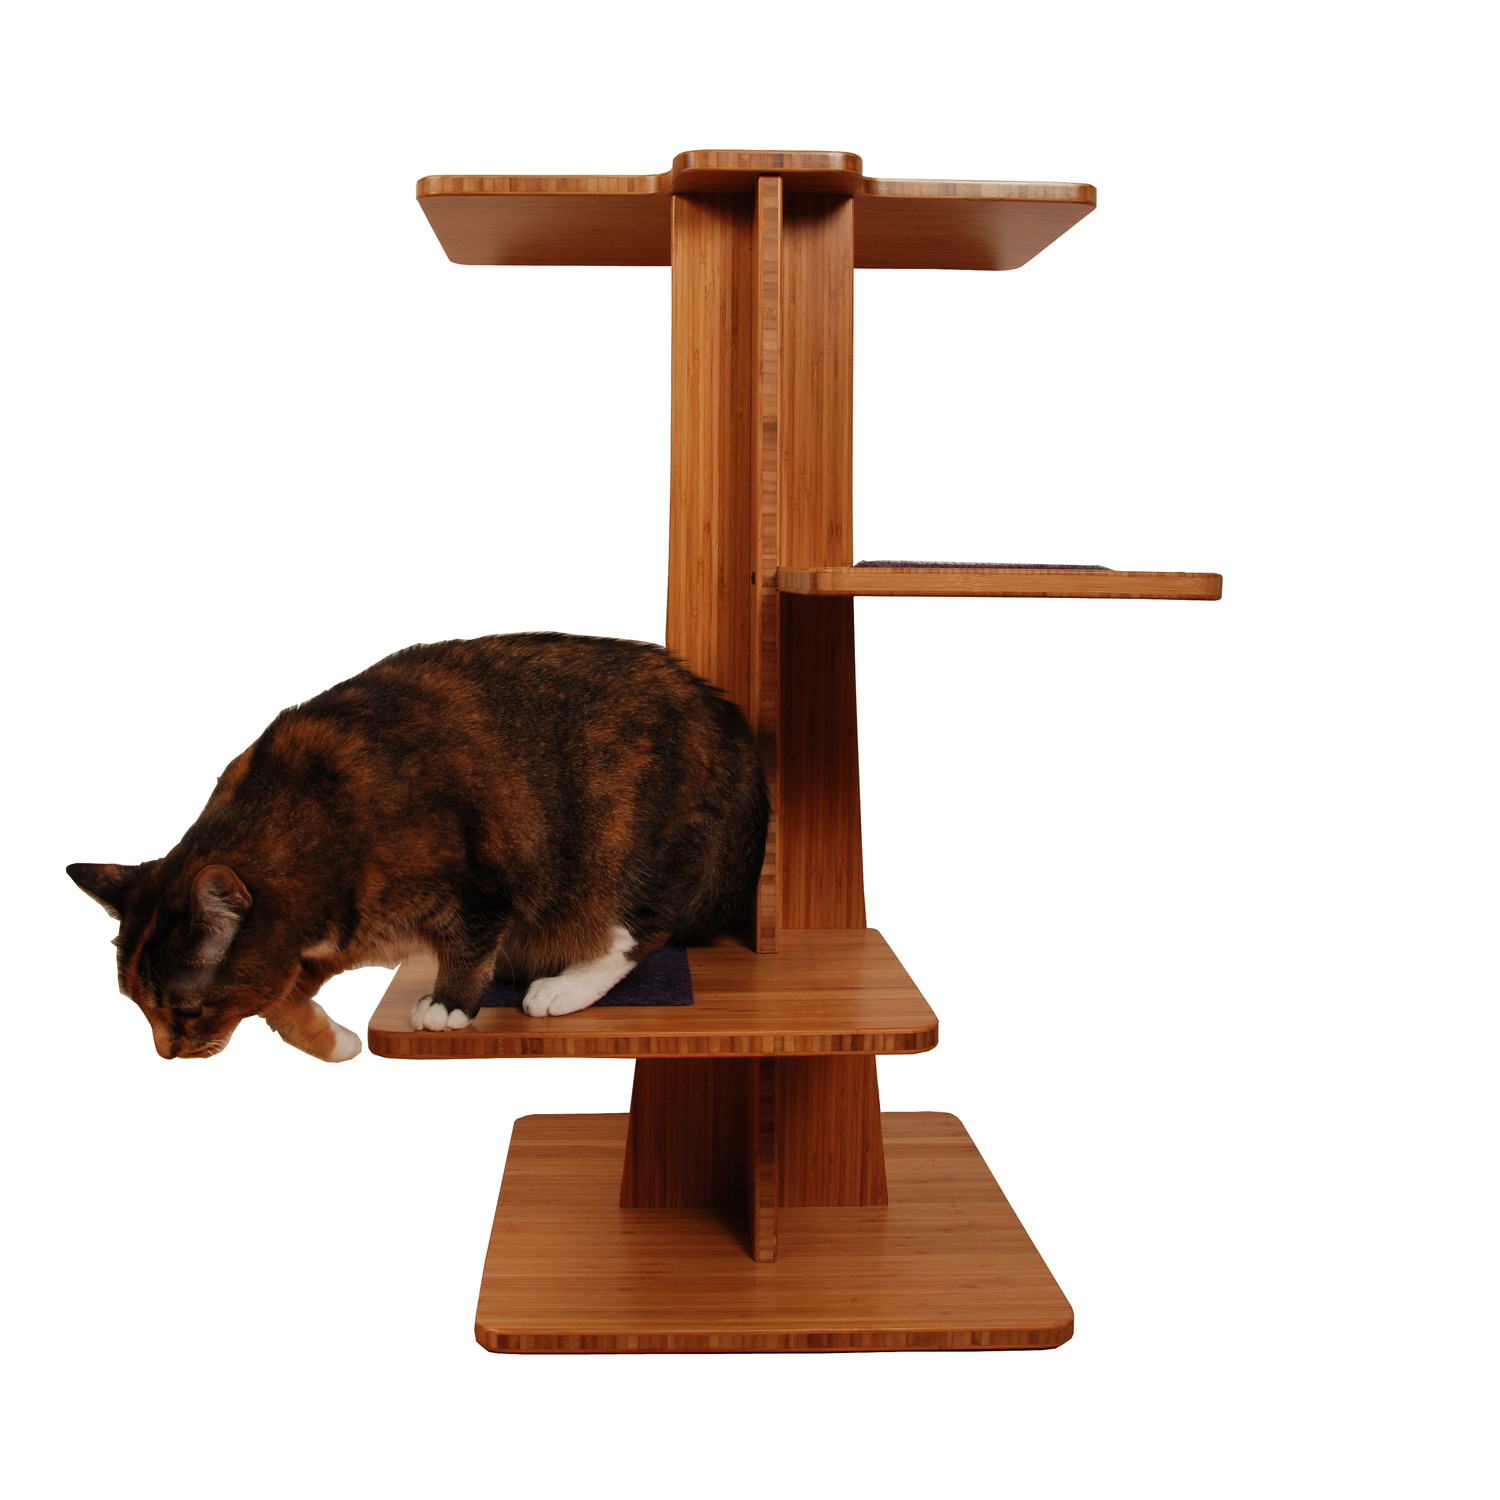 Cat Furniture For Sale Modern Cat Tree 3 39 Tall Acacia Tower Square Cat Habitat